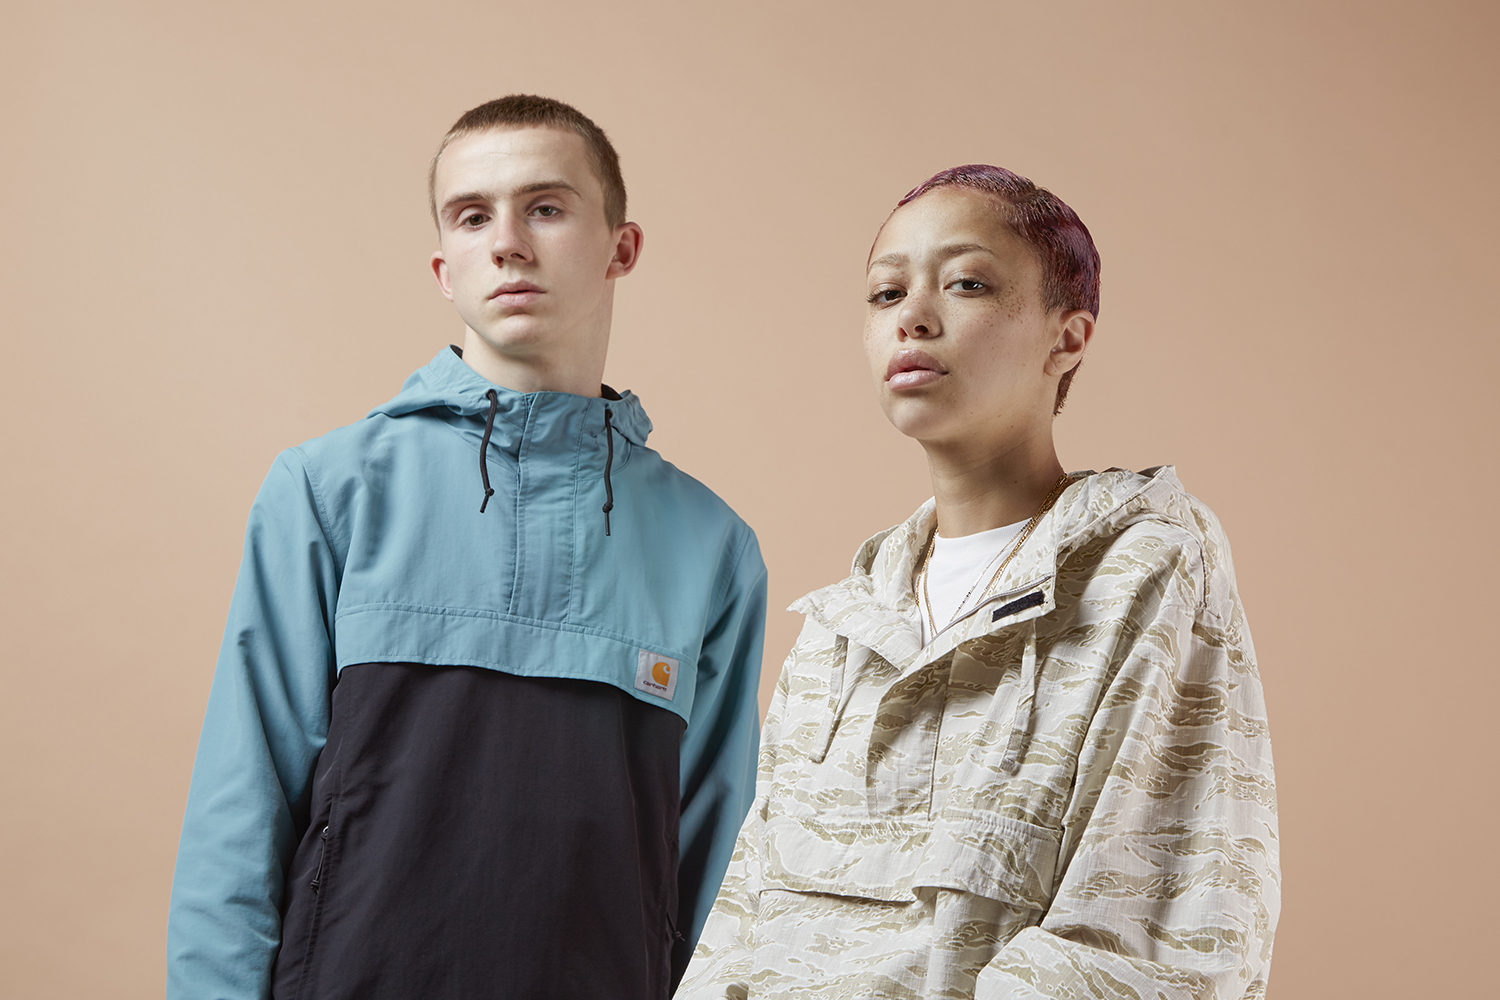 Carhartt WIP Lookbook